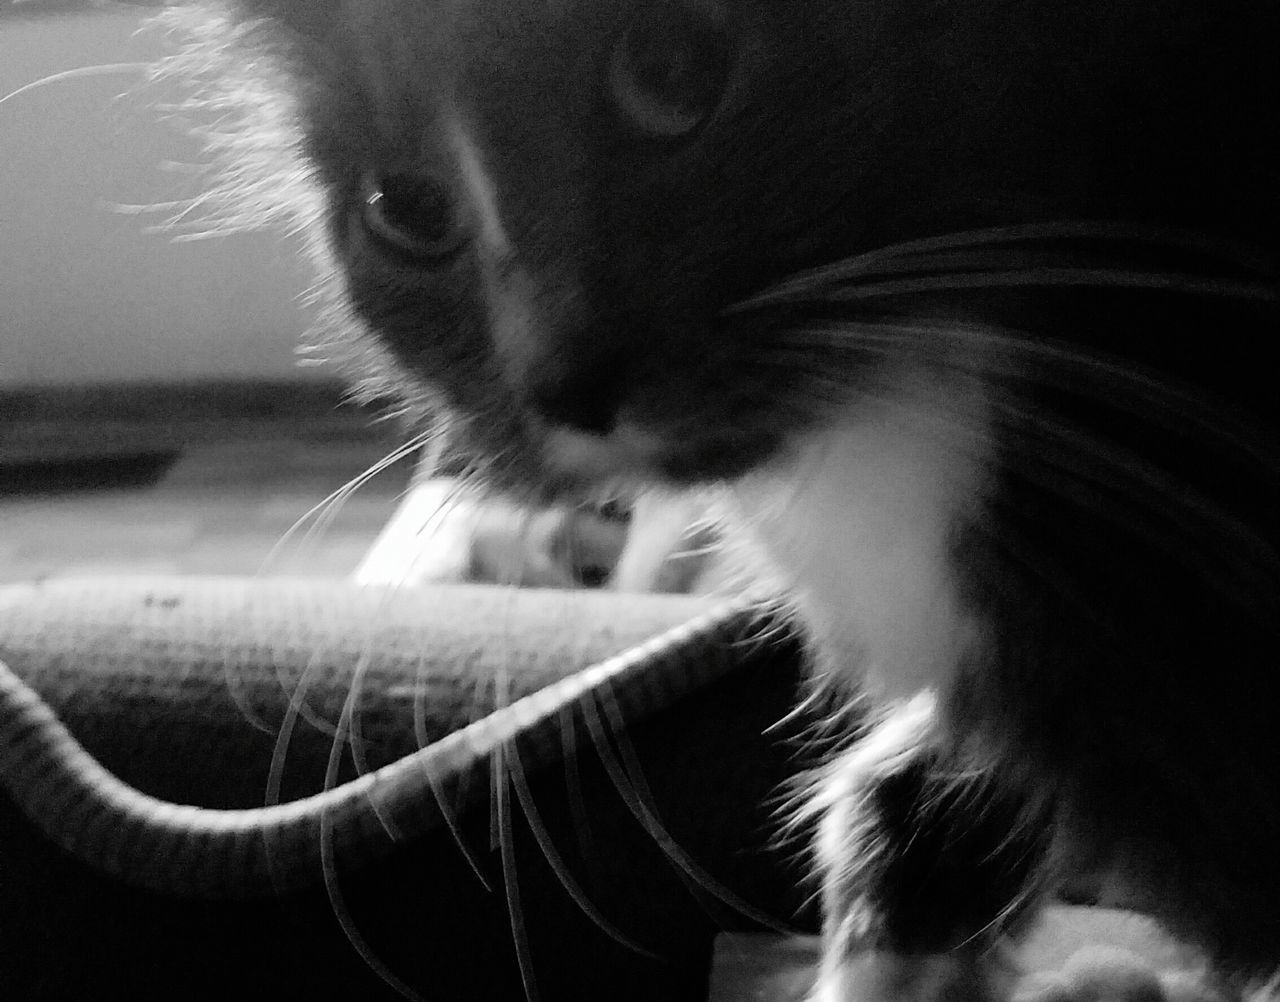 domestic cat, one animal, pets, domestic animals, animal themes, feline, mammal, cat, whisker, animal head, close-up, indoors, no people, day